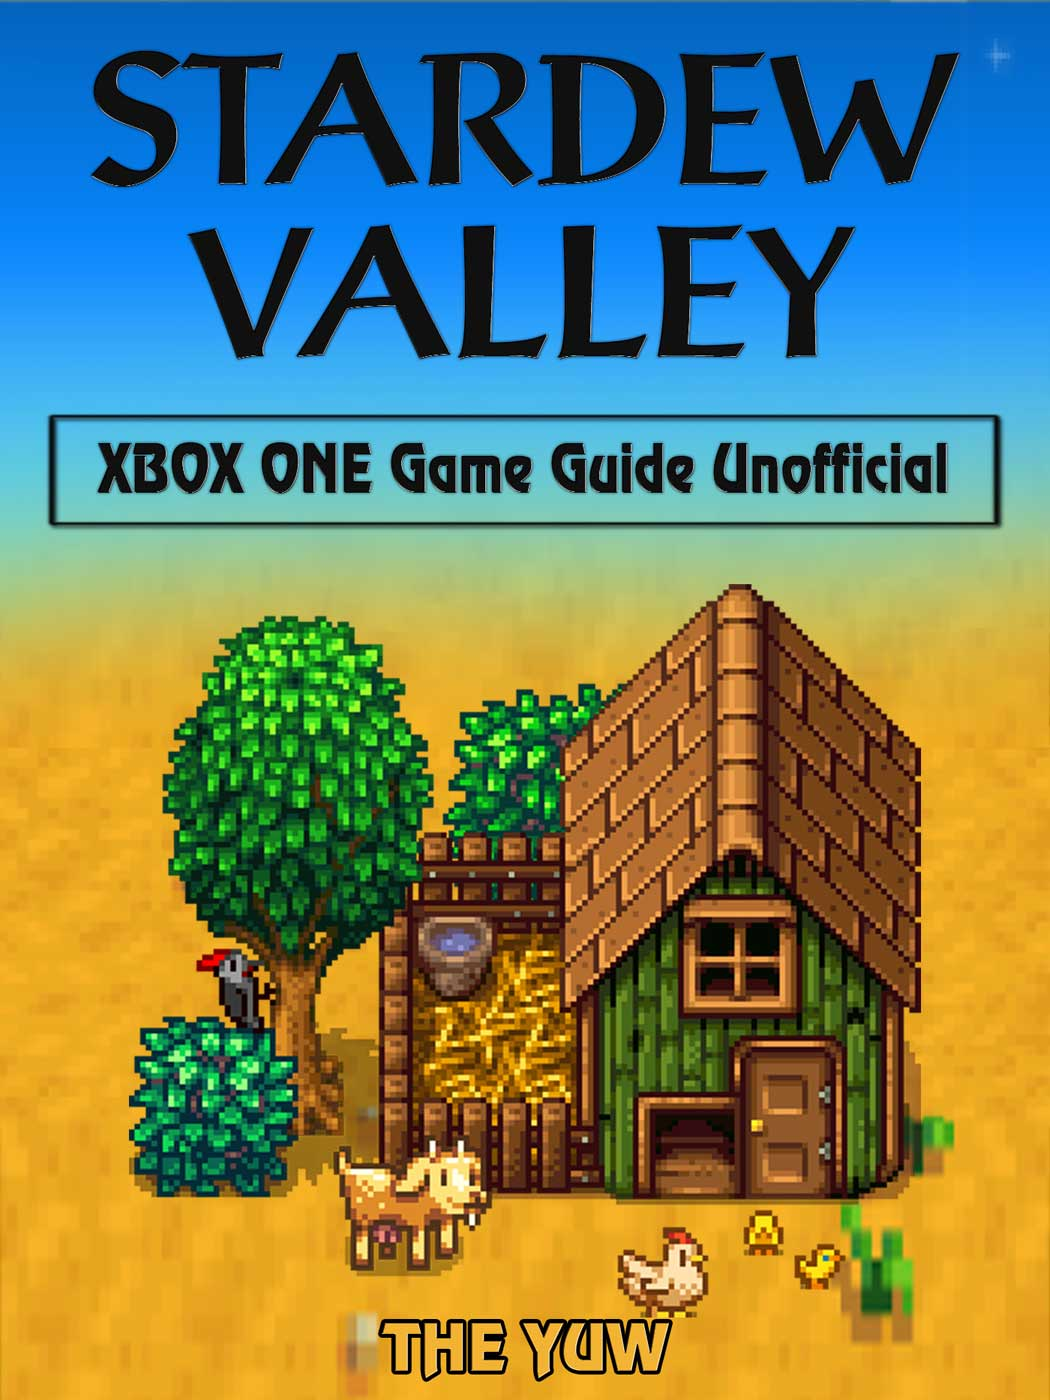 Stardew Valley Xbox One Game Guide Unofficial By The Yuw